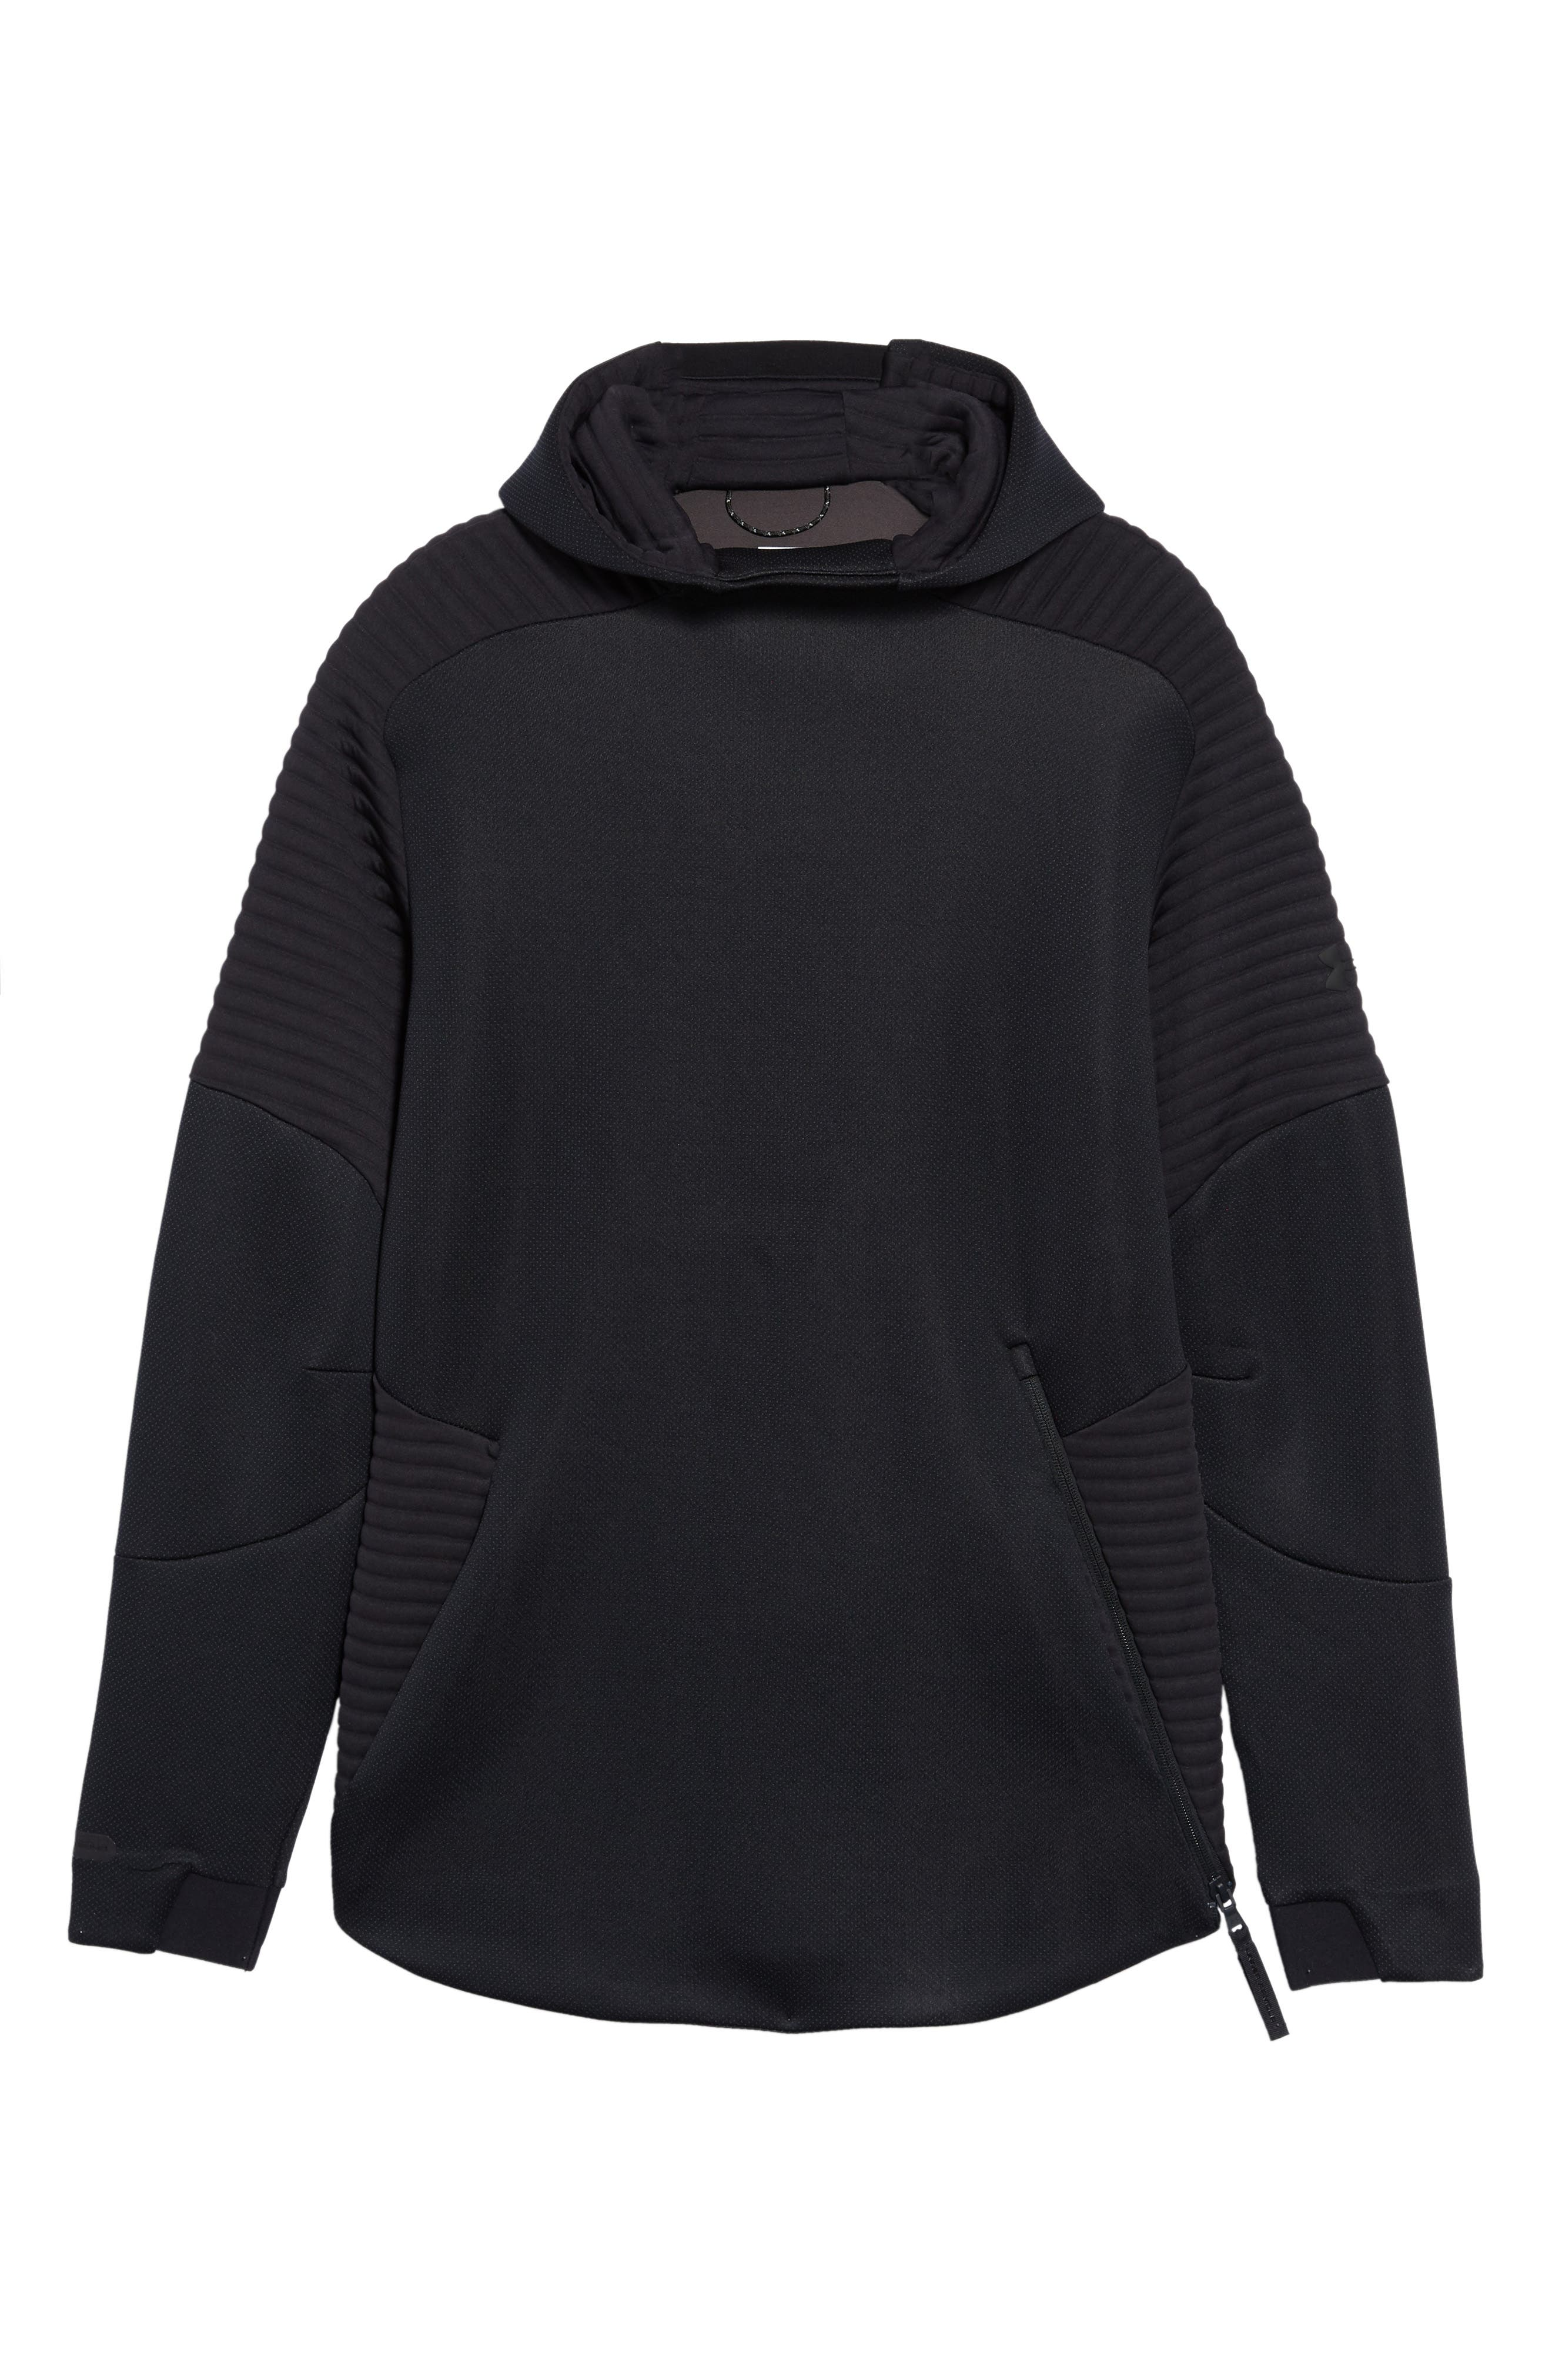 Unstoppable /MOVE Hoodie,                             Alternate thumbnail 6, color,                             BLACK/ CHARCOAL/ BLACK